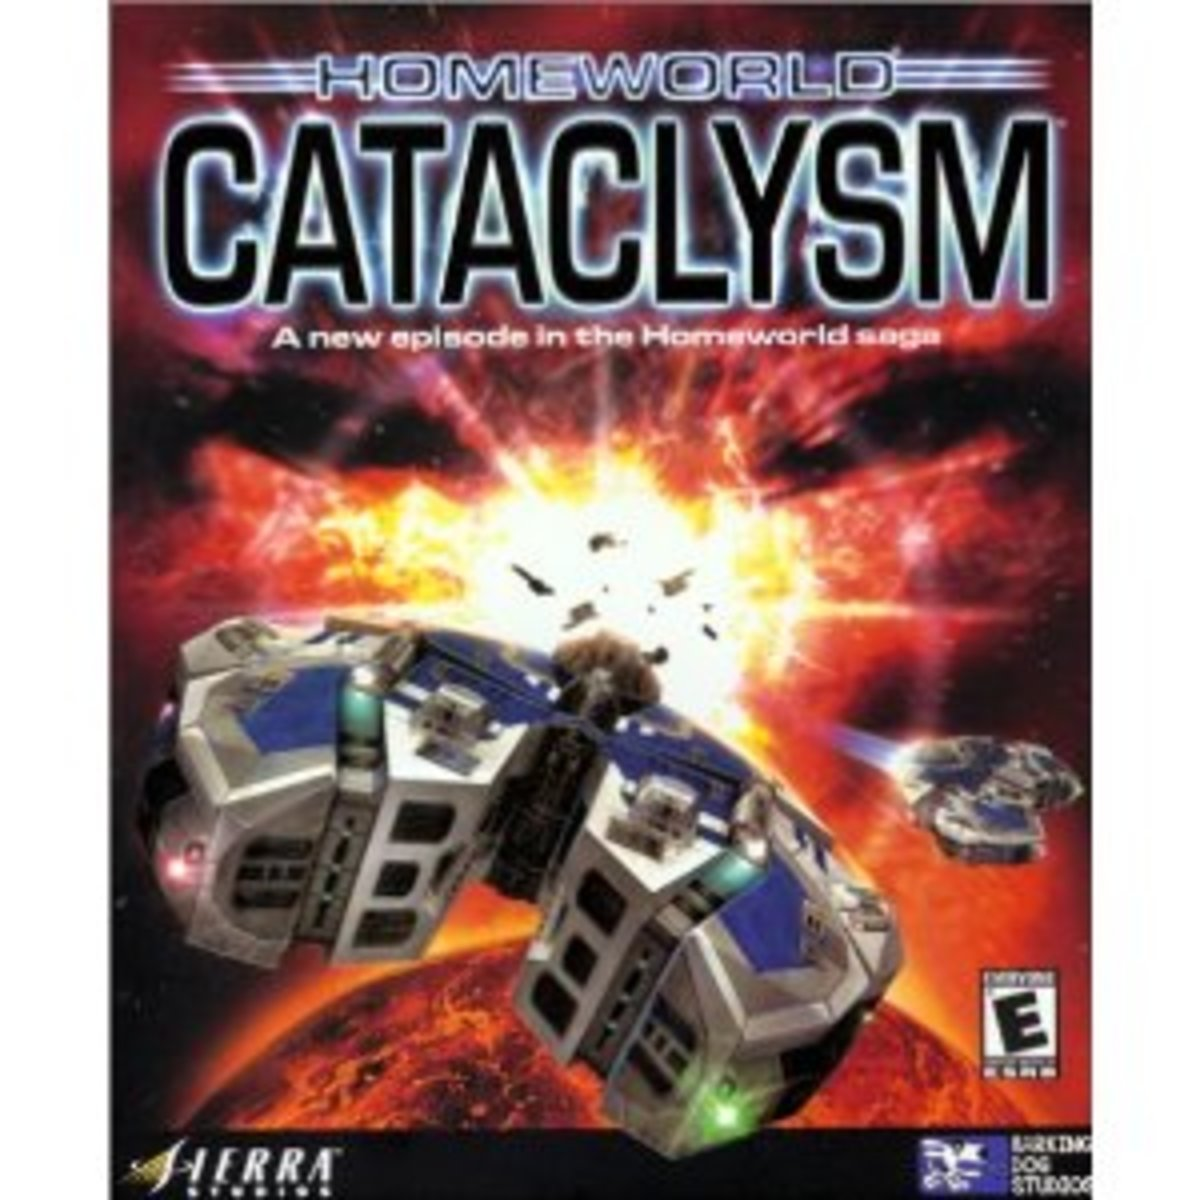 Homeworld Cataclysm - by Barking Dog Studios and published by Sierra Entertainment